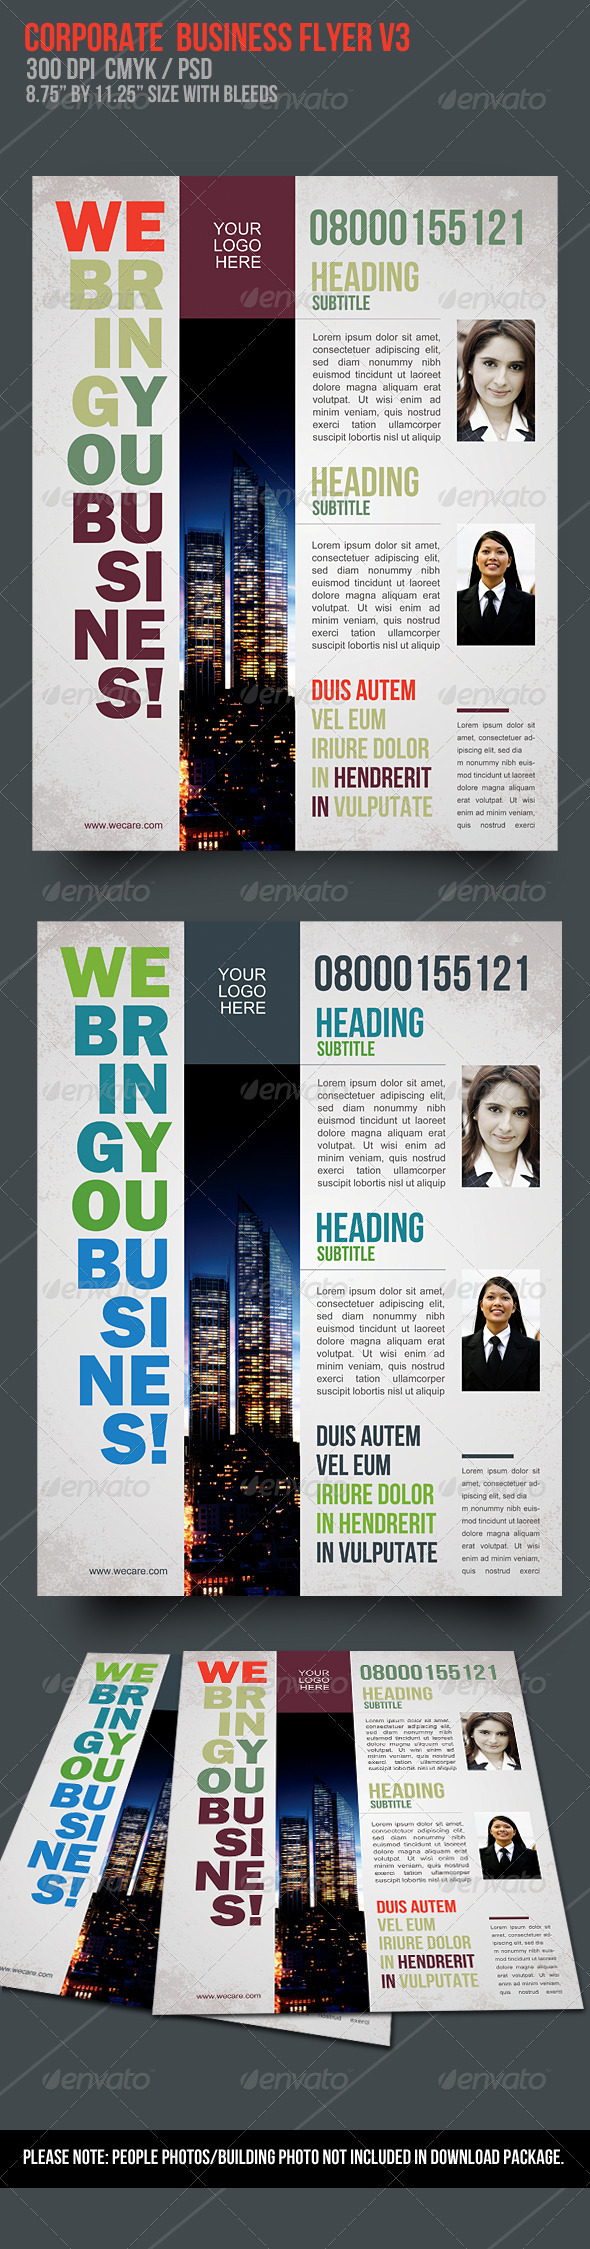 GraphicRiver Corporate Business Flyer V3 1740558